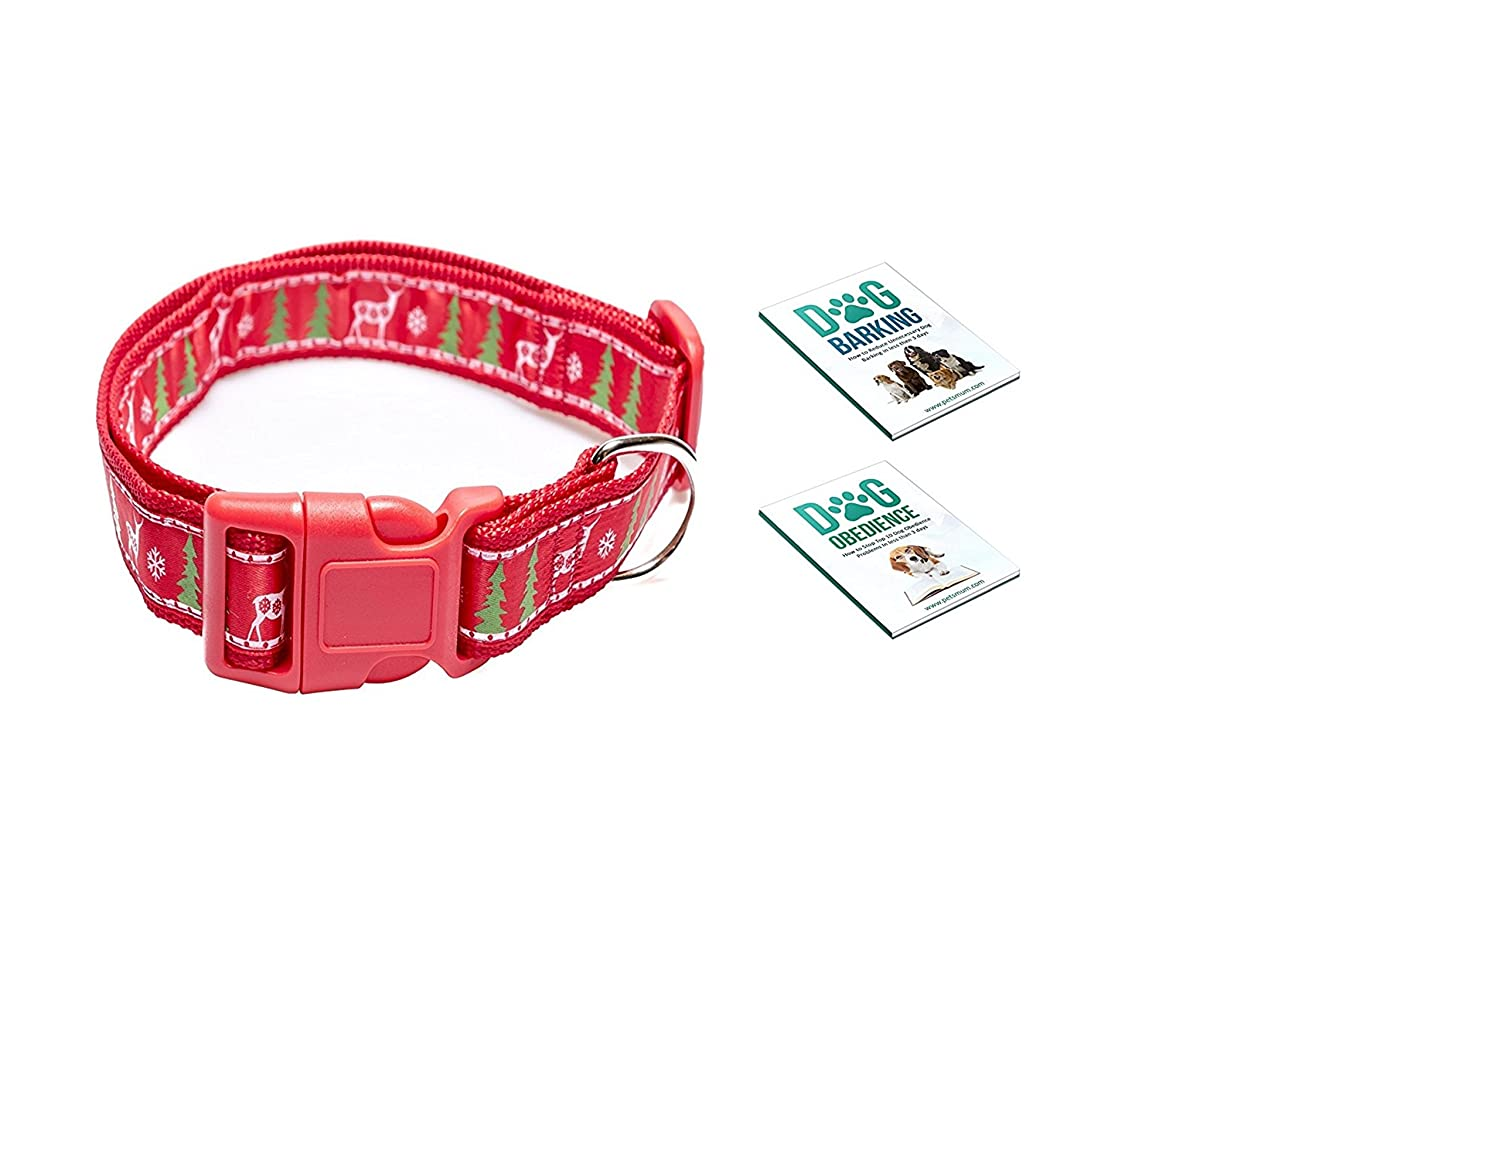 Christmas Dog Collar for Medium to Large Dog by Pet's Mum Offer Adjustable Padded Holiday Pet Collar for Dogs Heavy Duty   3 Bonus Bark Control E-Book   Your Dog Deserve It